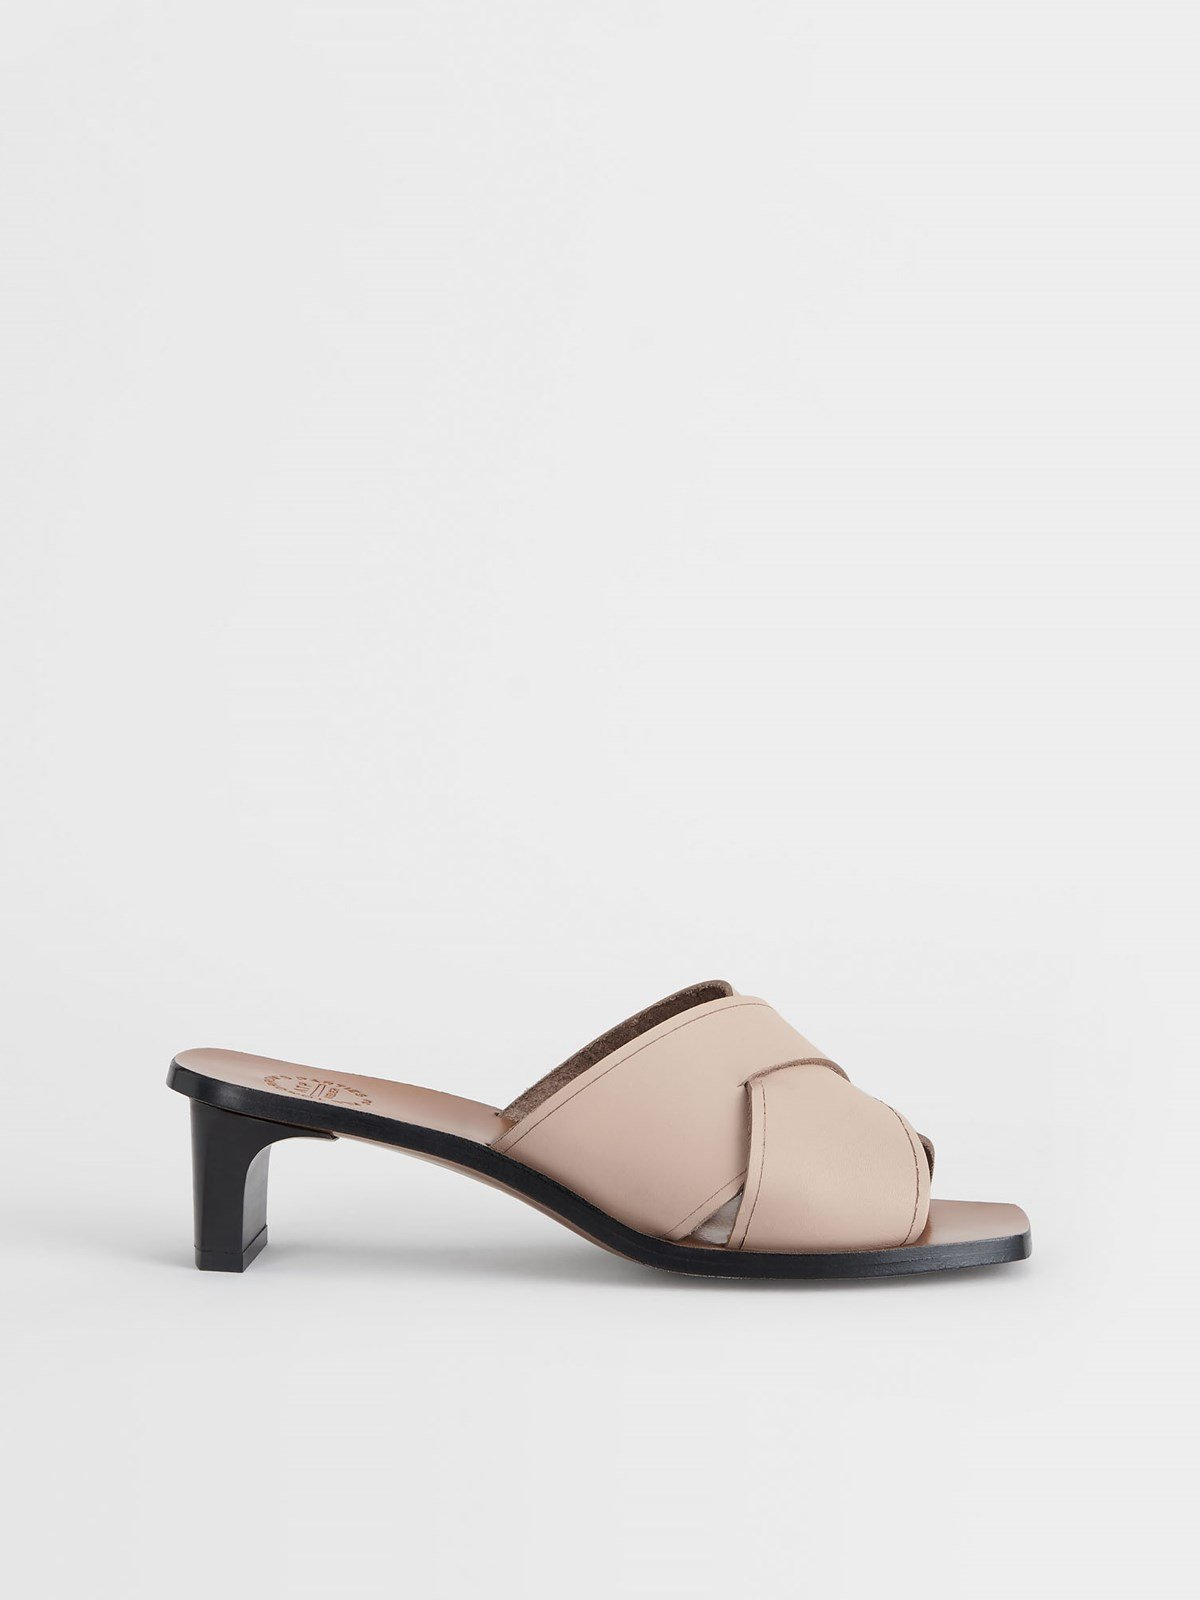 Stornarella Sand Heeled sandals